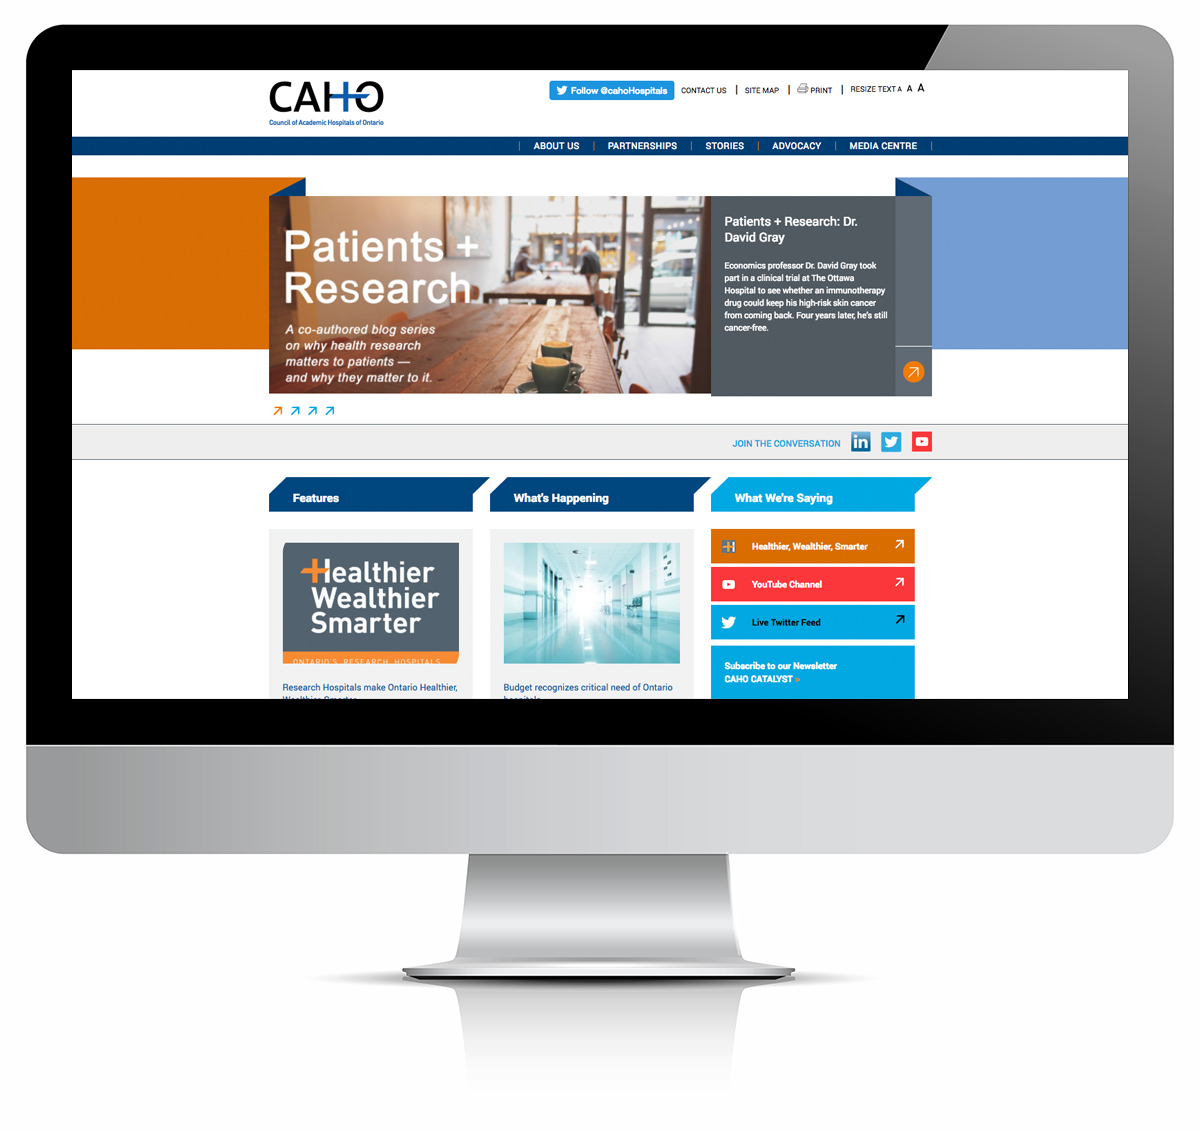 CAHO - Council of Academic Hospitals of Ontario